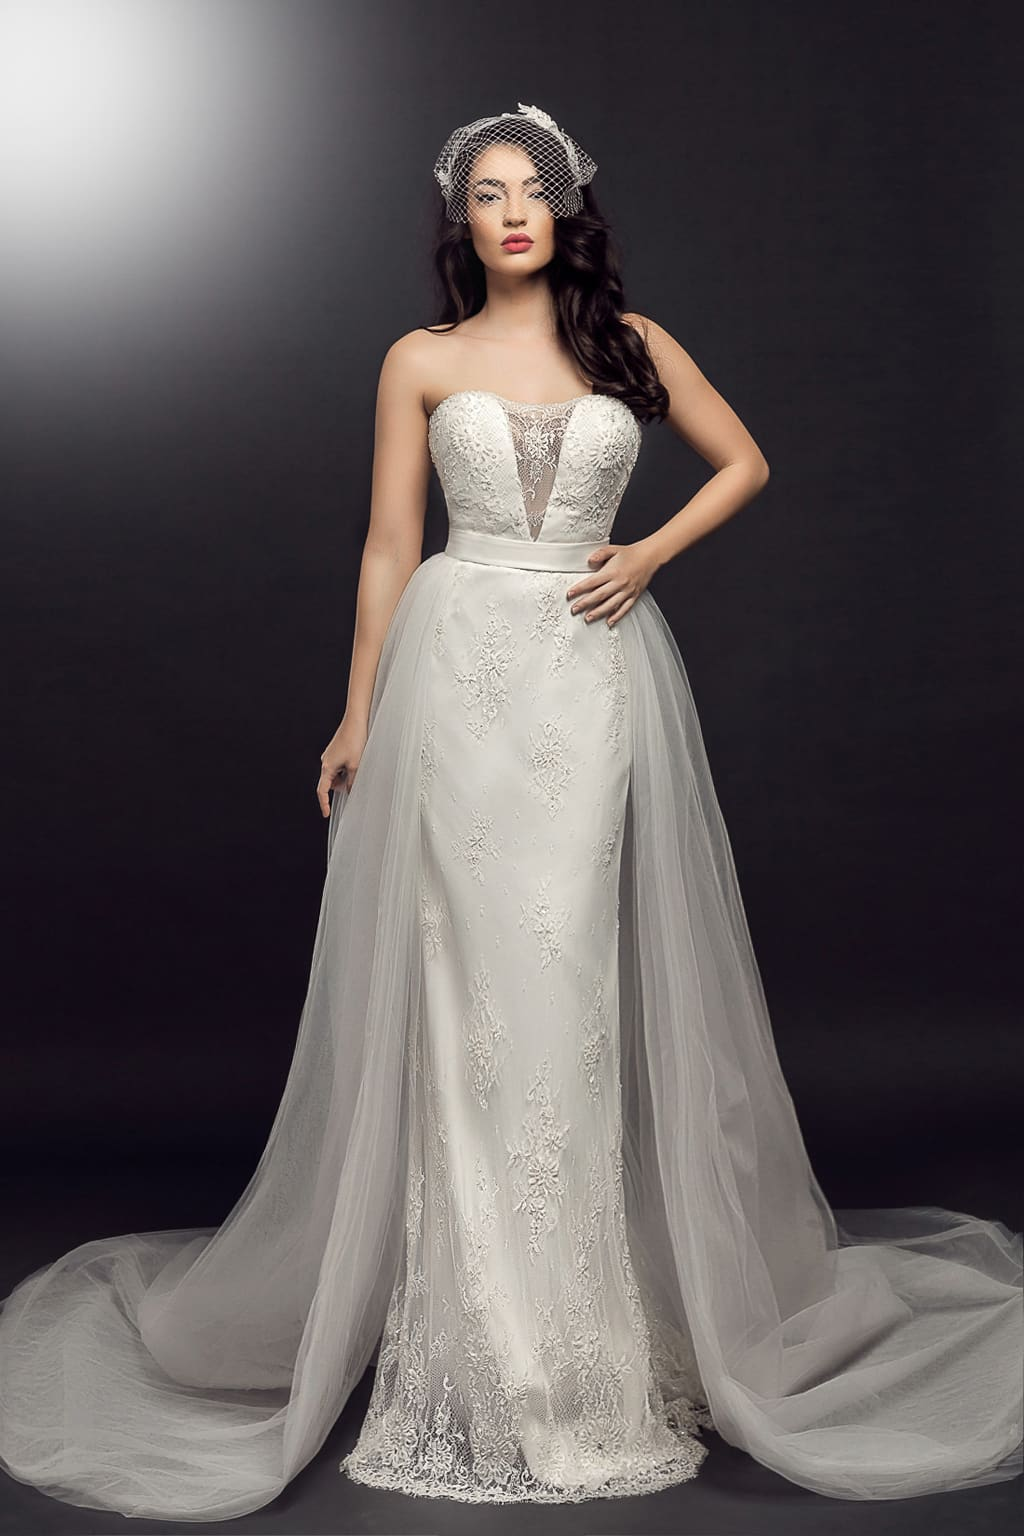 Penelope Model - Colectia Dreams - Adora Sposa